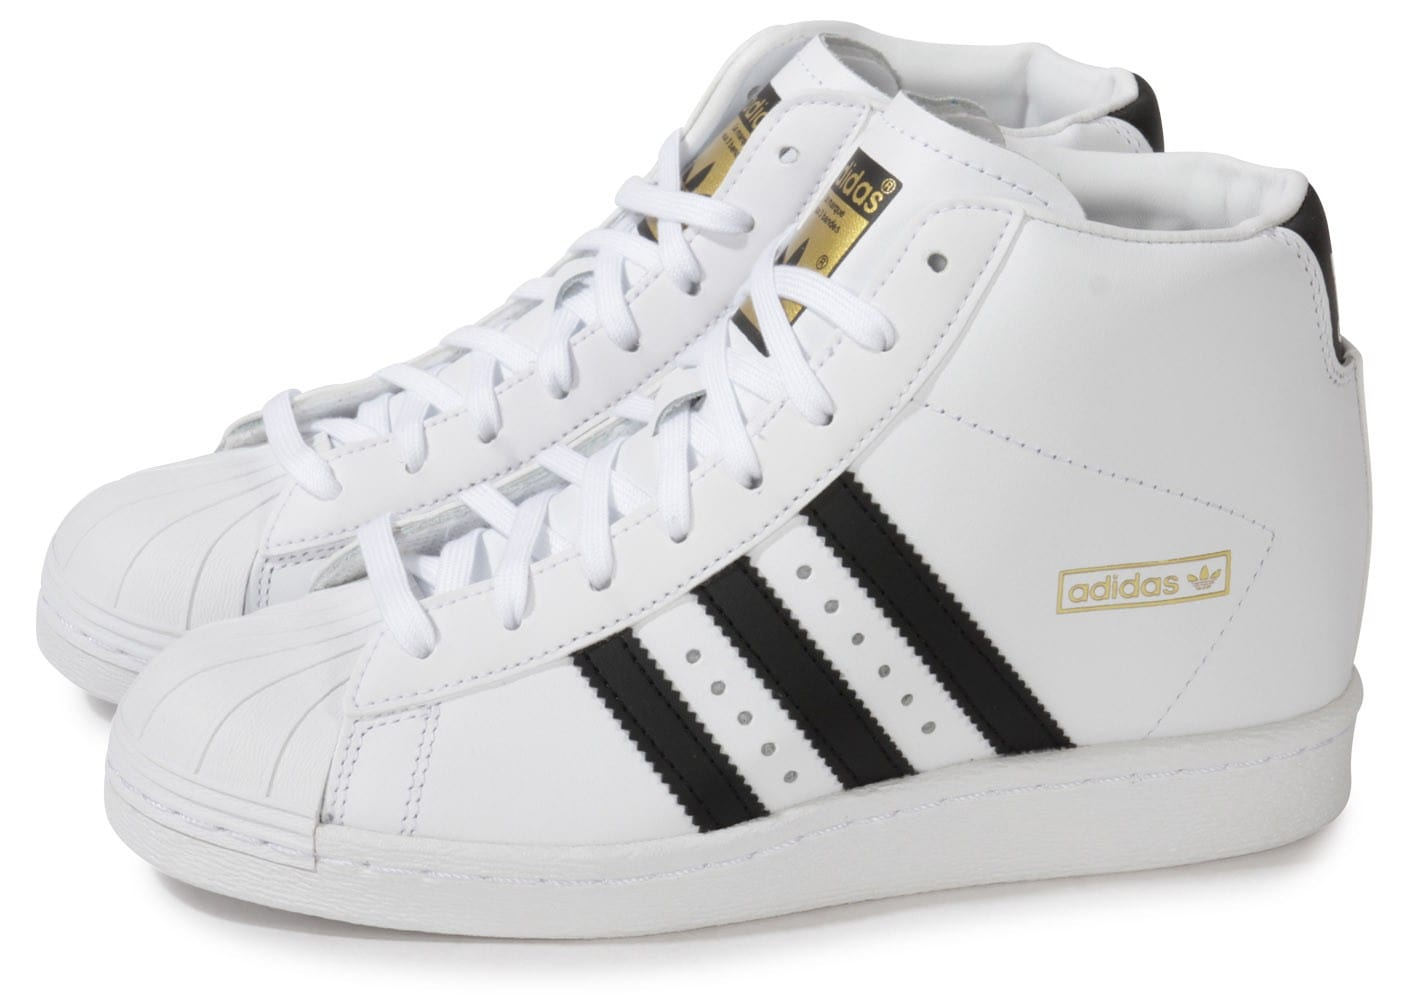 Up Chaussures Compensee Blanche Superstar Chausport Adidas rxBdoeWC